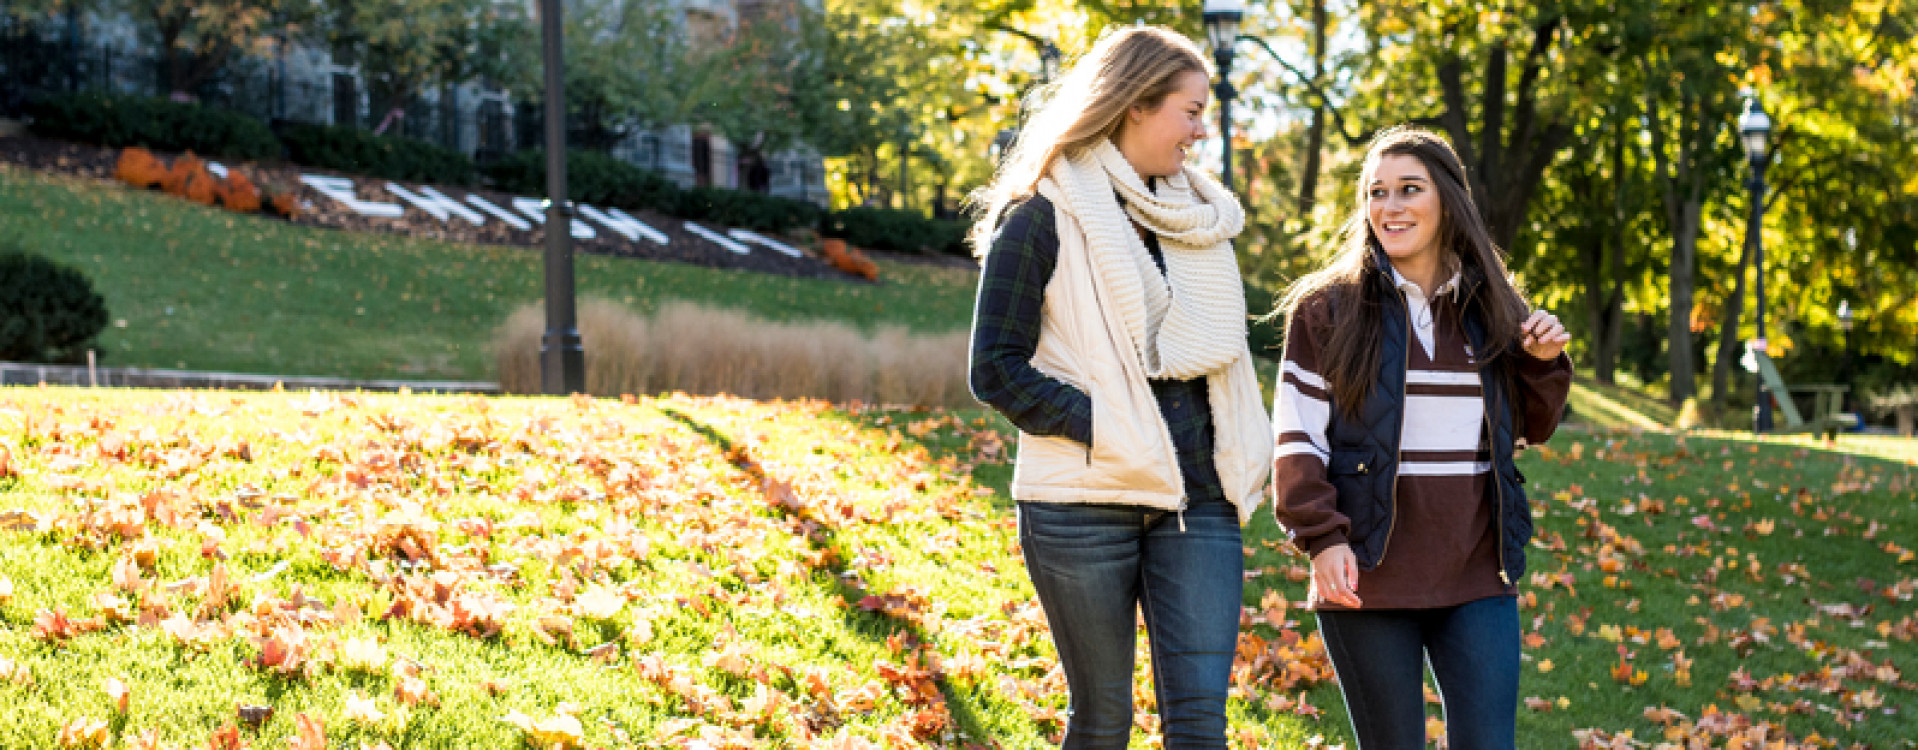 Two female students on the University Lawn in fall